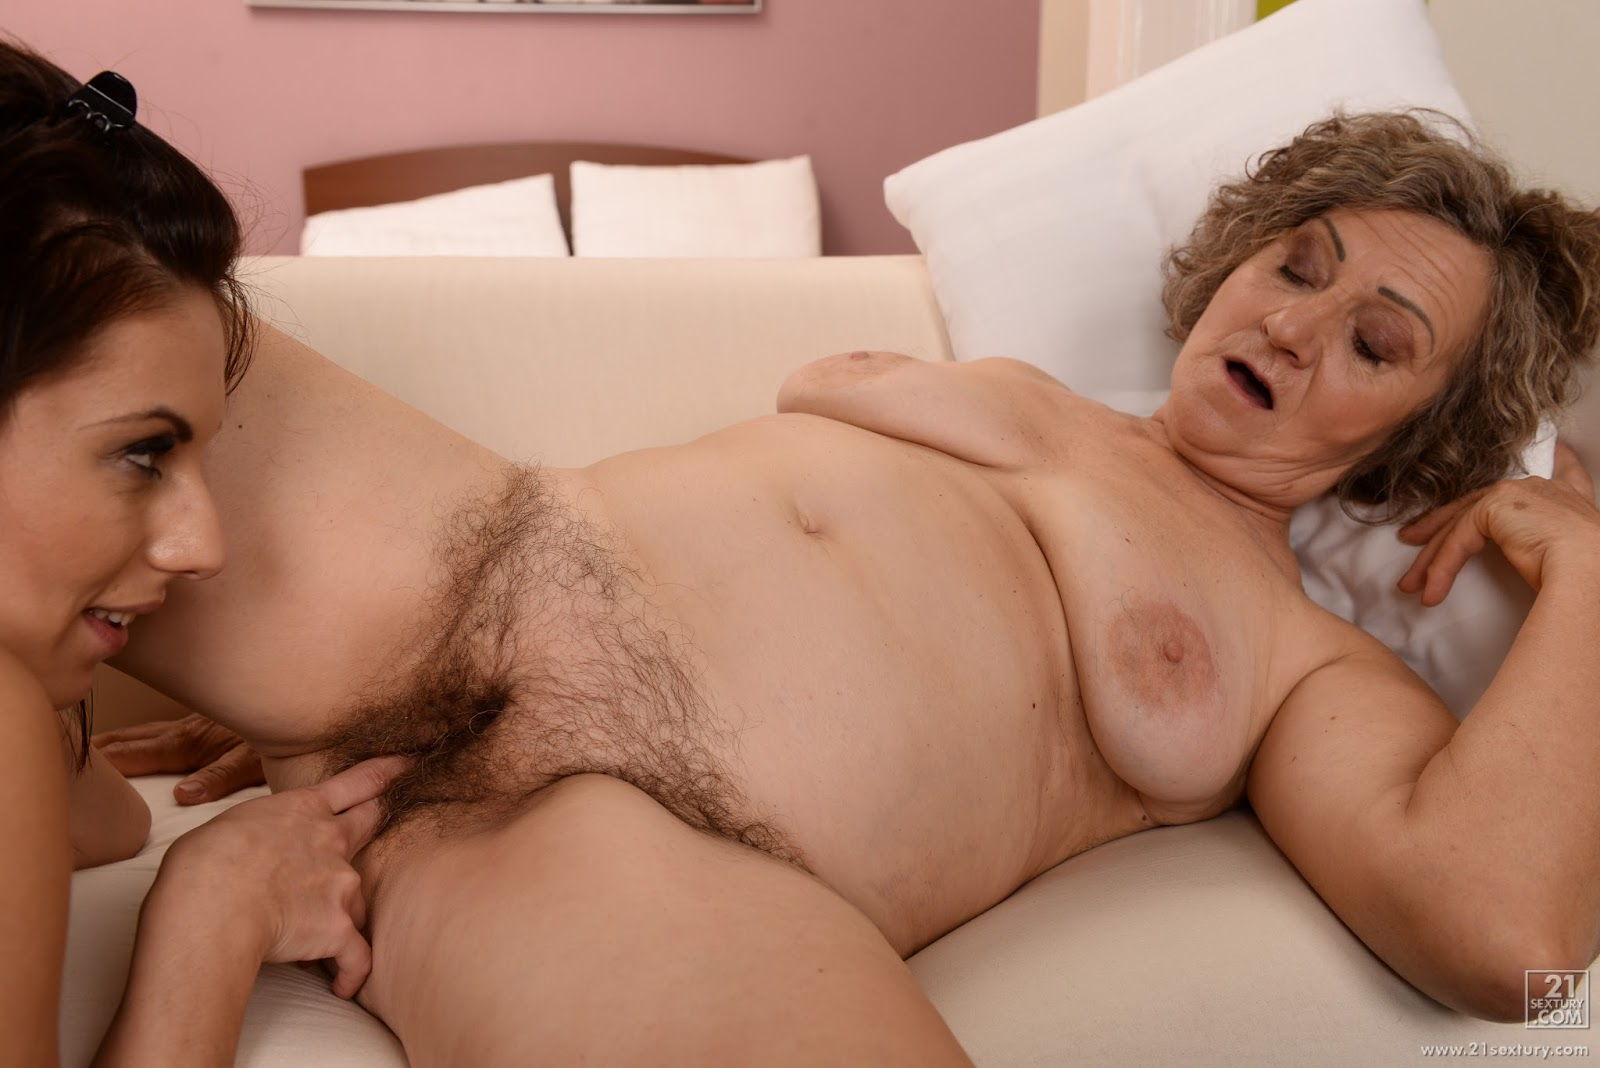 Grandmother porn video-6516